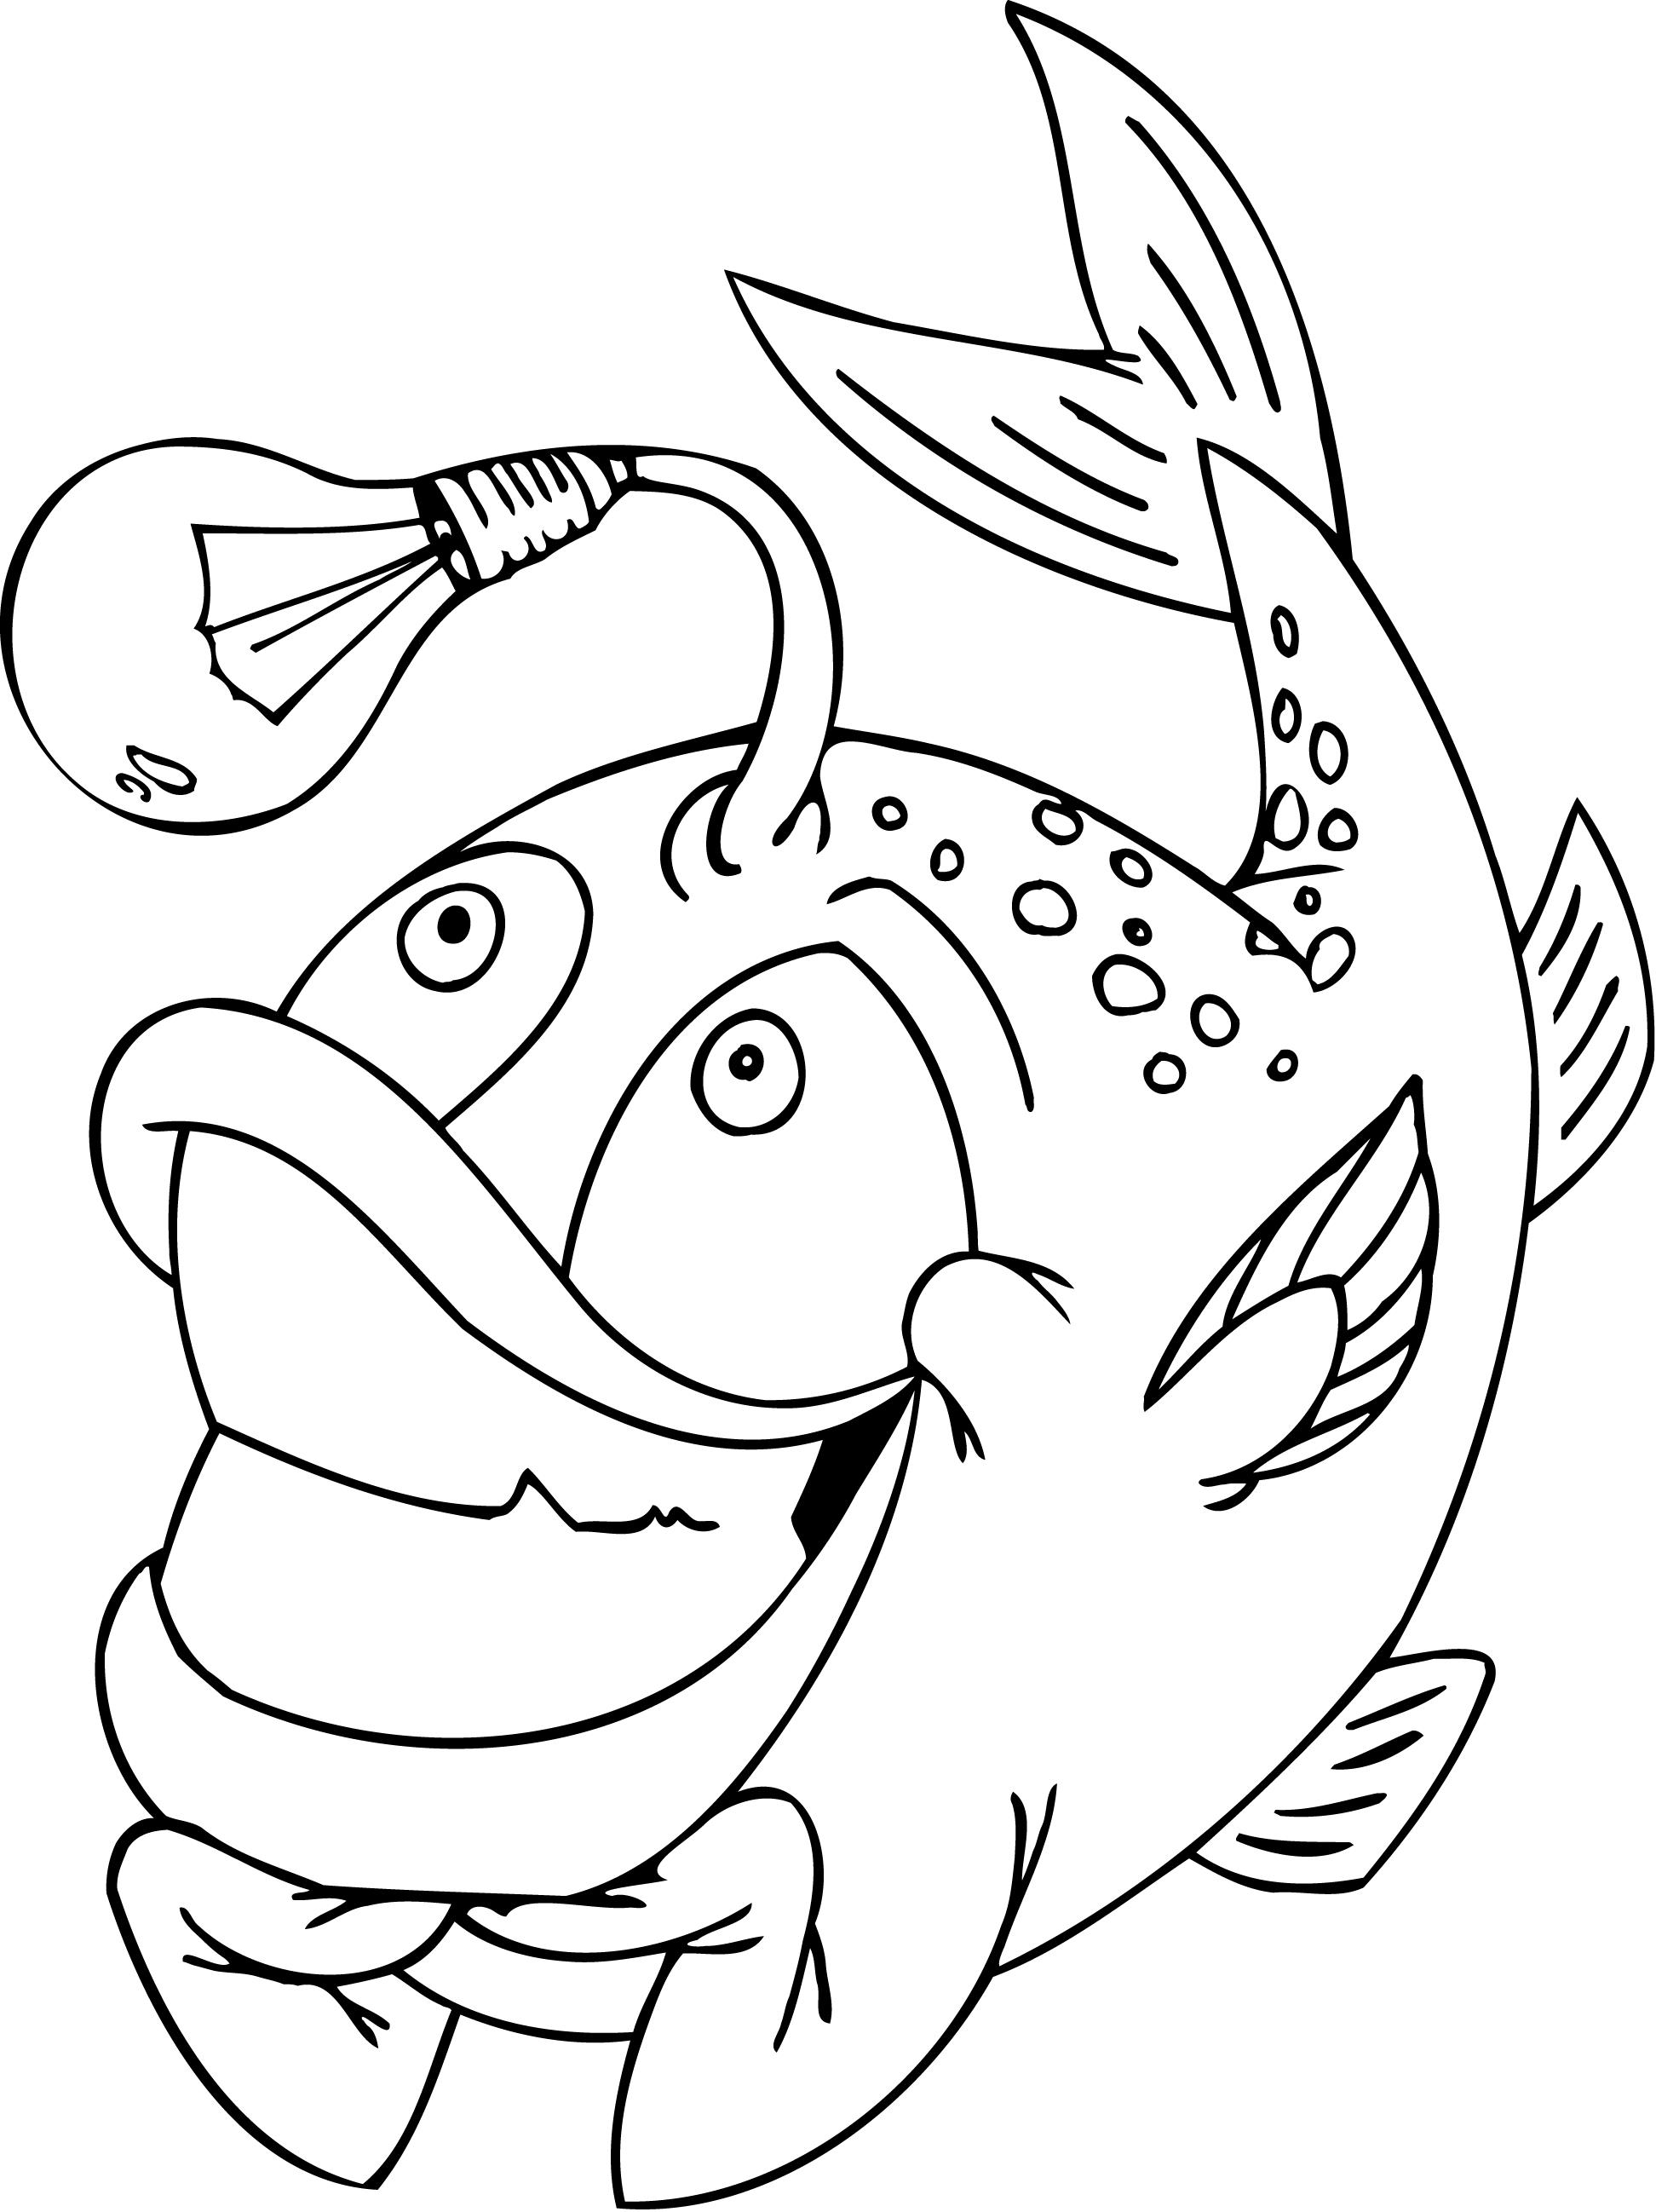 funny coloring pages to print free printable funny coloring pages for kids pages to print funny coloring